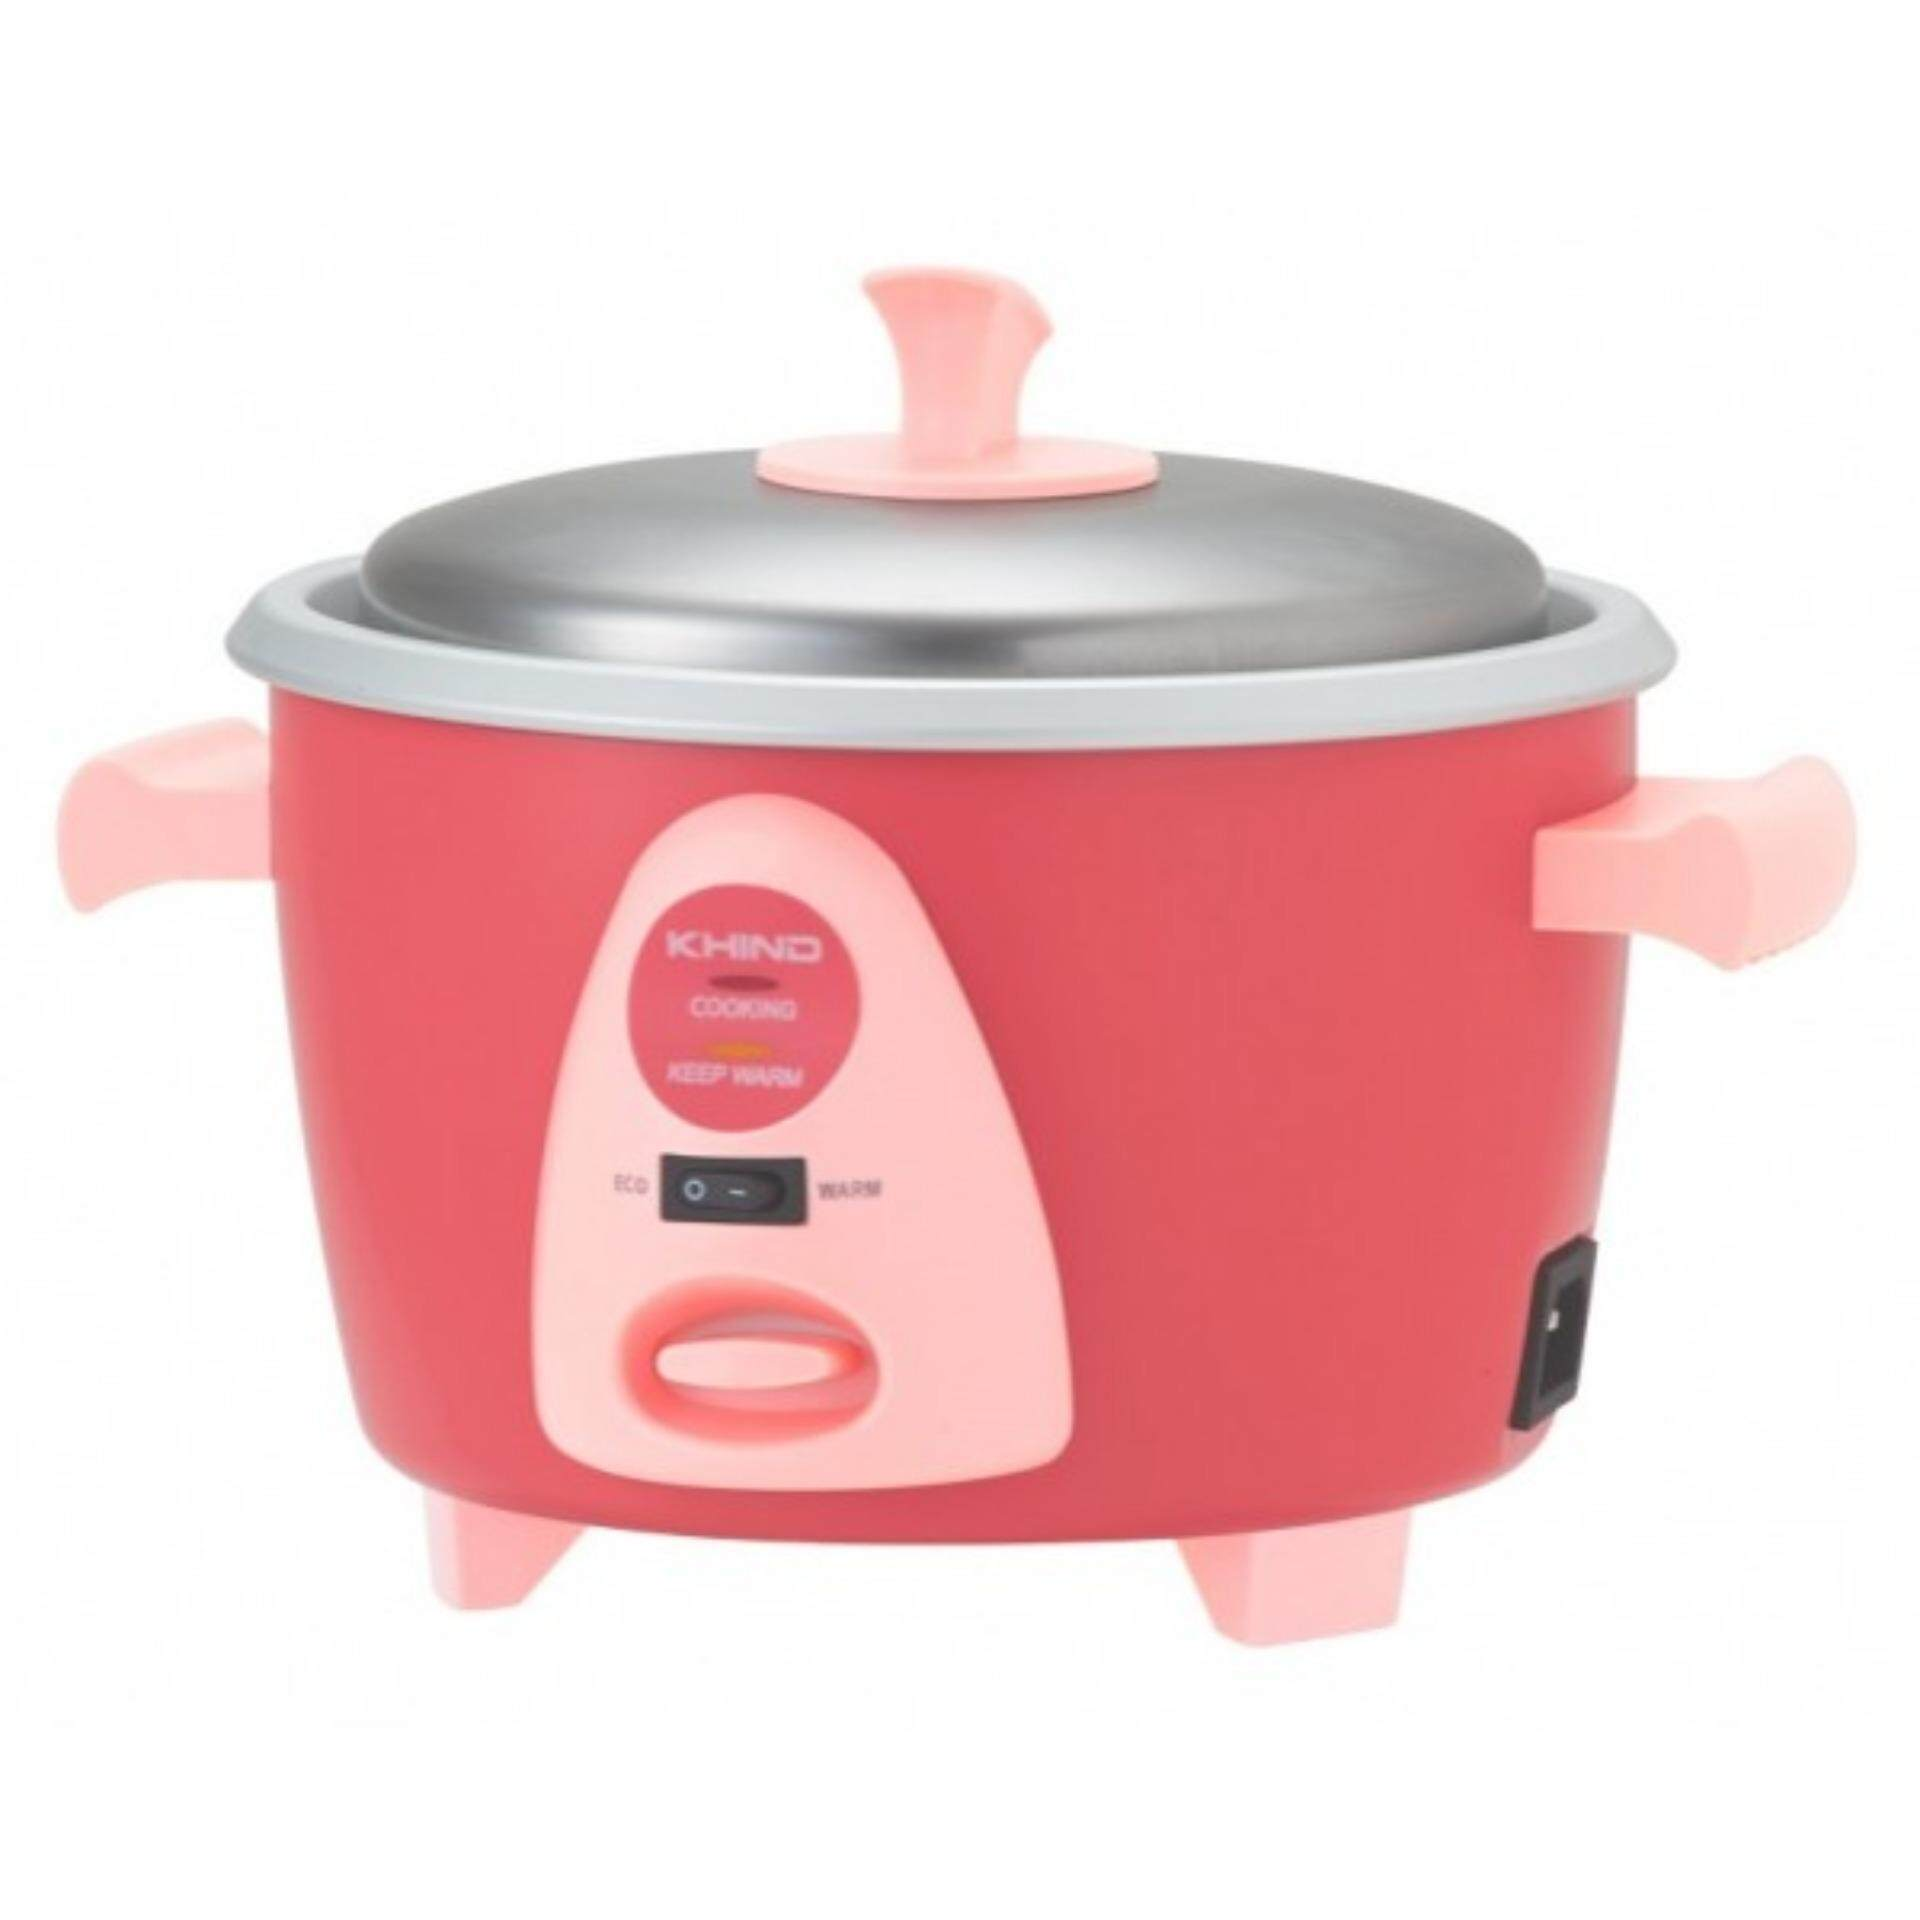 KHIND RICE COOKER RC-906 (0.6L) RANDOM COLOR